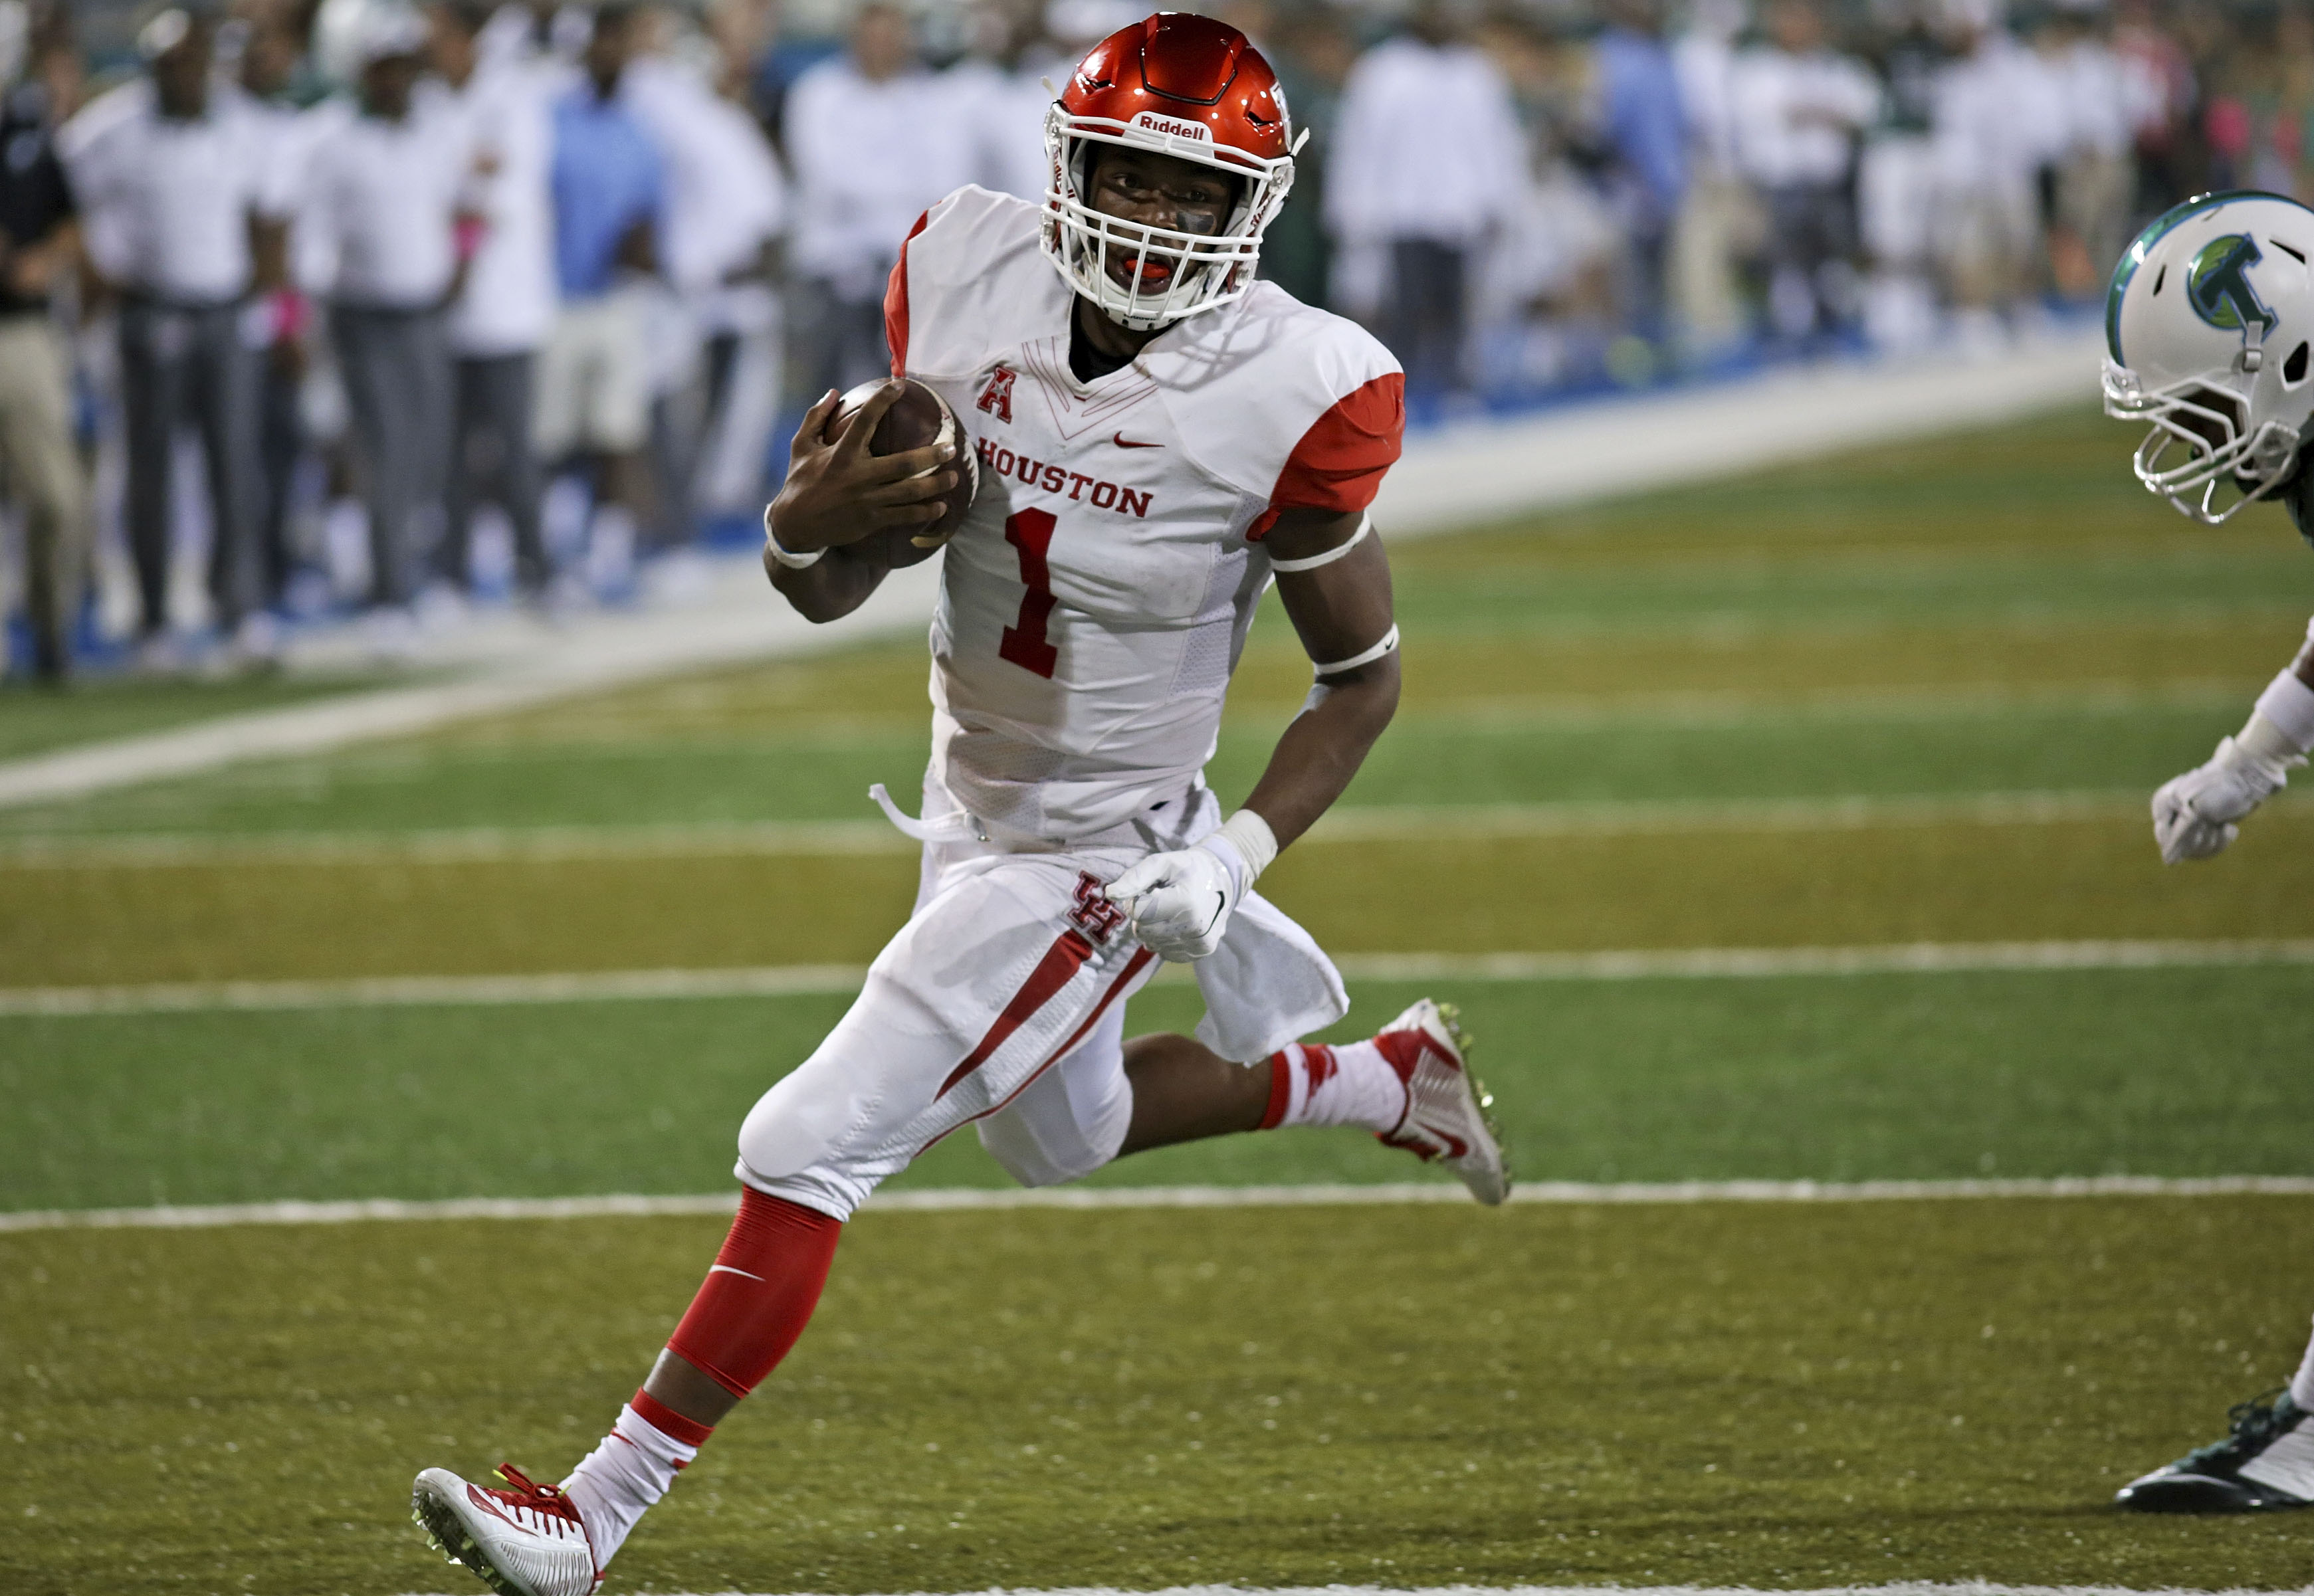 Houston quarterback Greg Ward Jr. (1) runs into the end zone to score against Tulane during an NCAA college football game in New Orleans, Friday, Oct. 16, 2015. (AP Photo/Max Becherer)